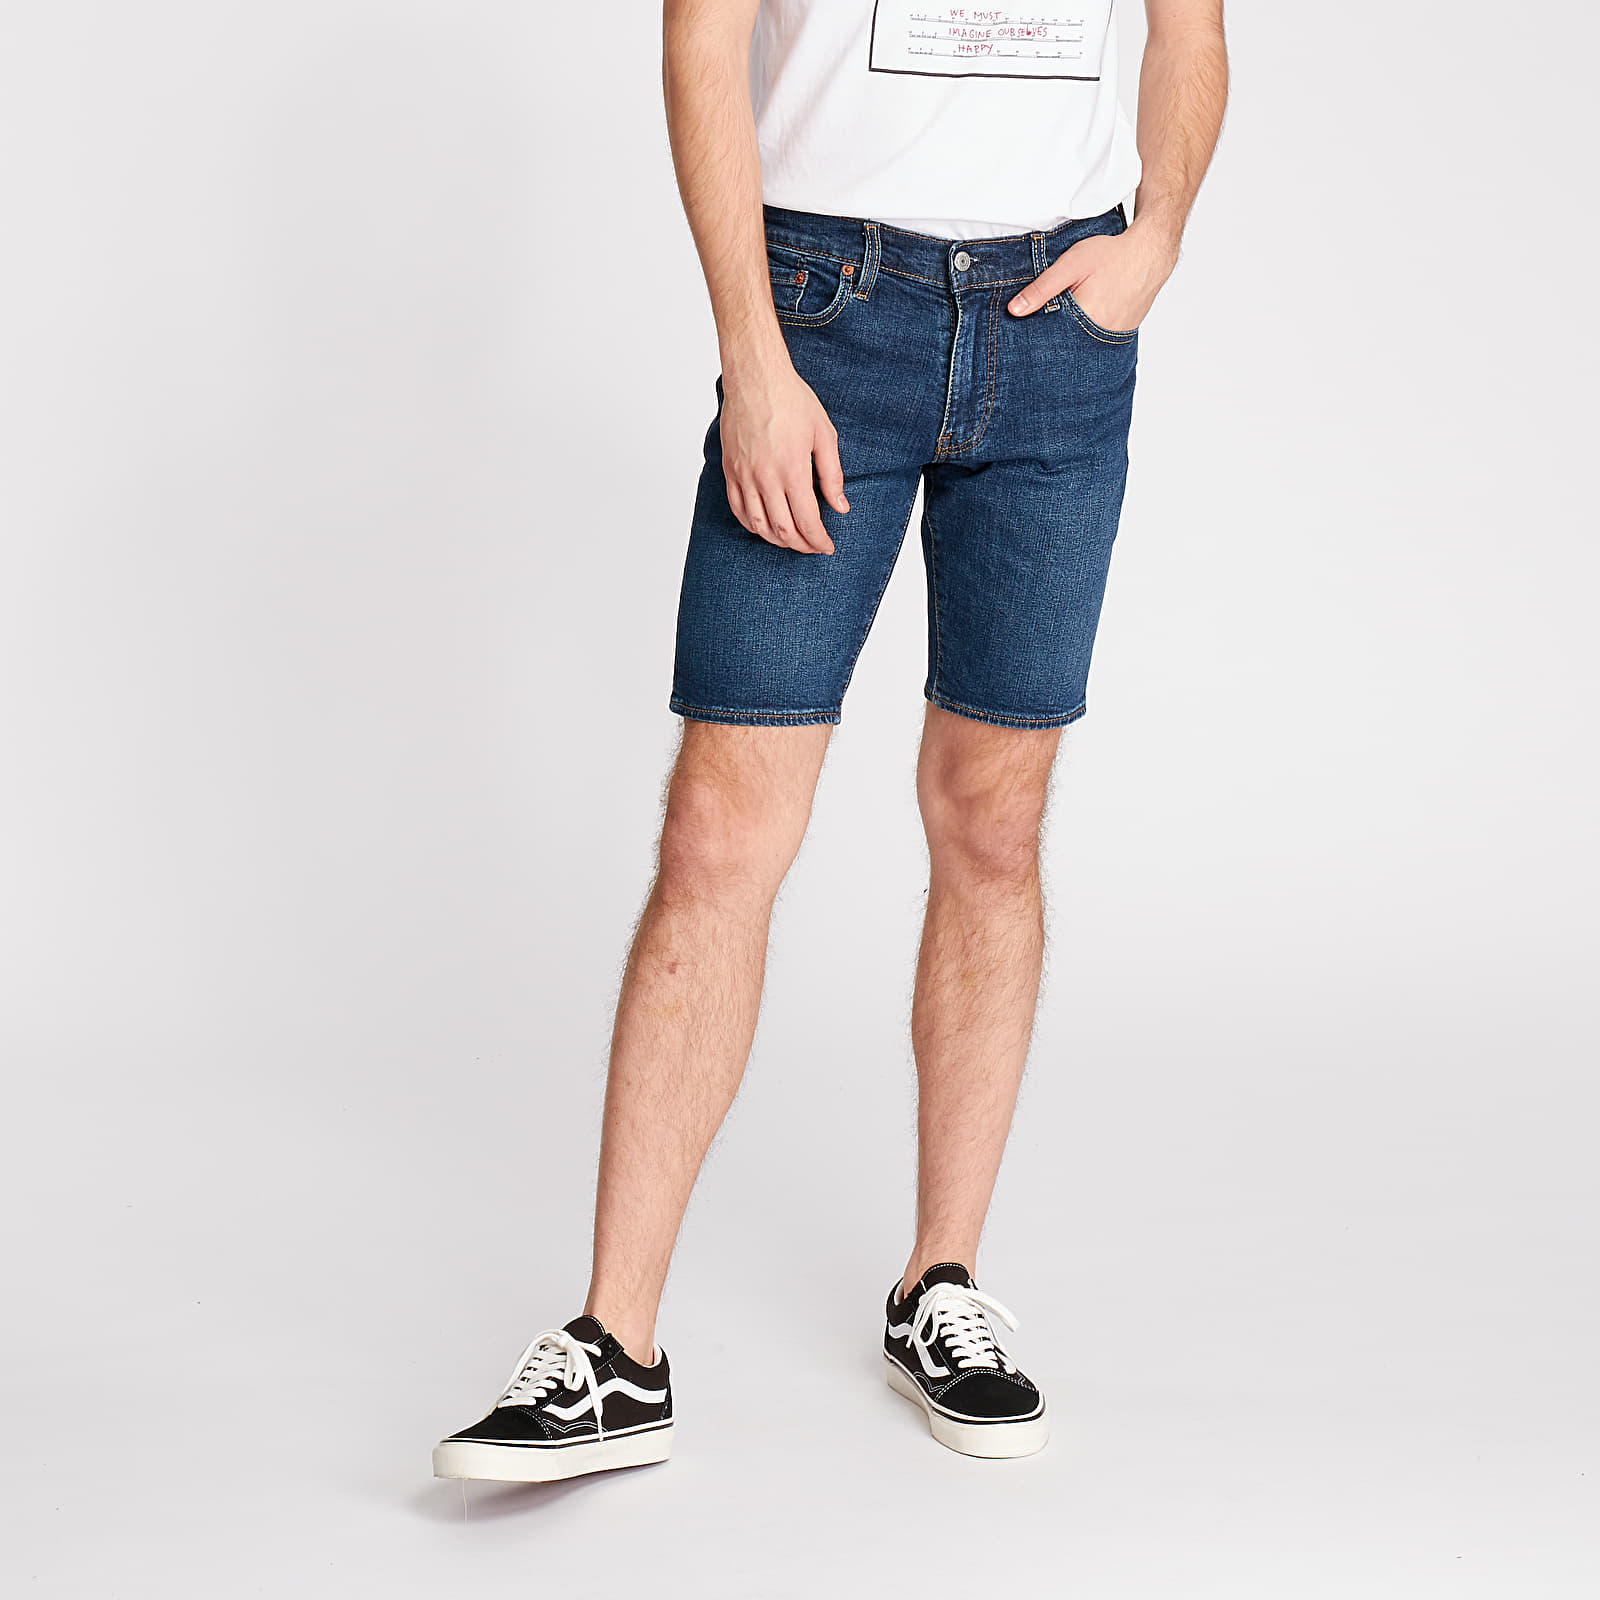 Shorts Levi's® 511 Slim Shorts Blue